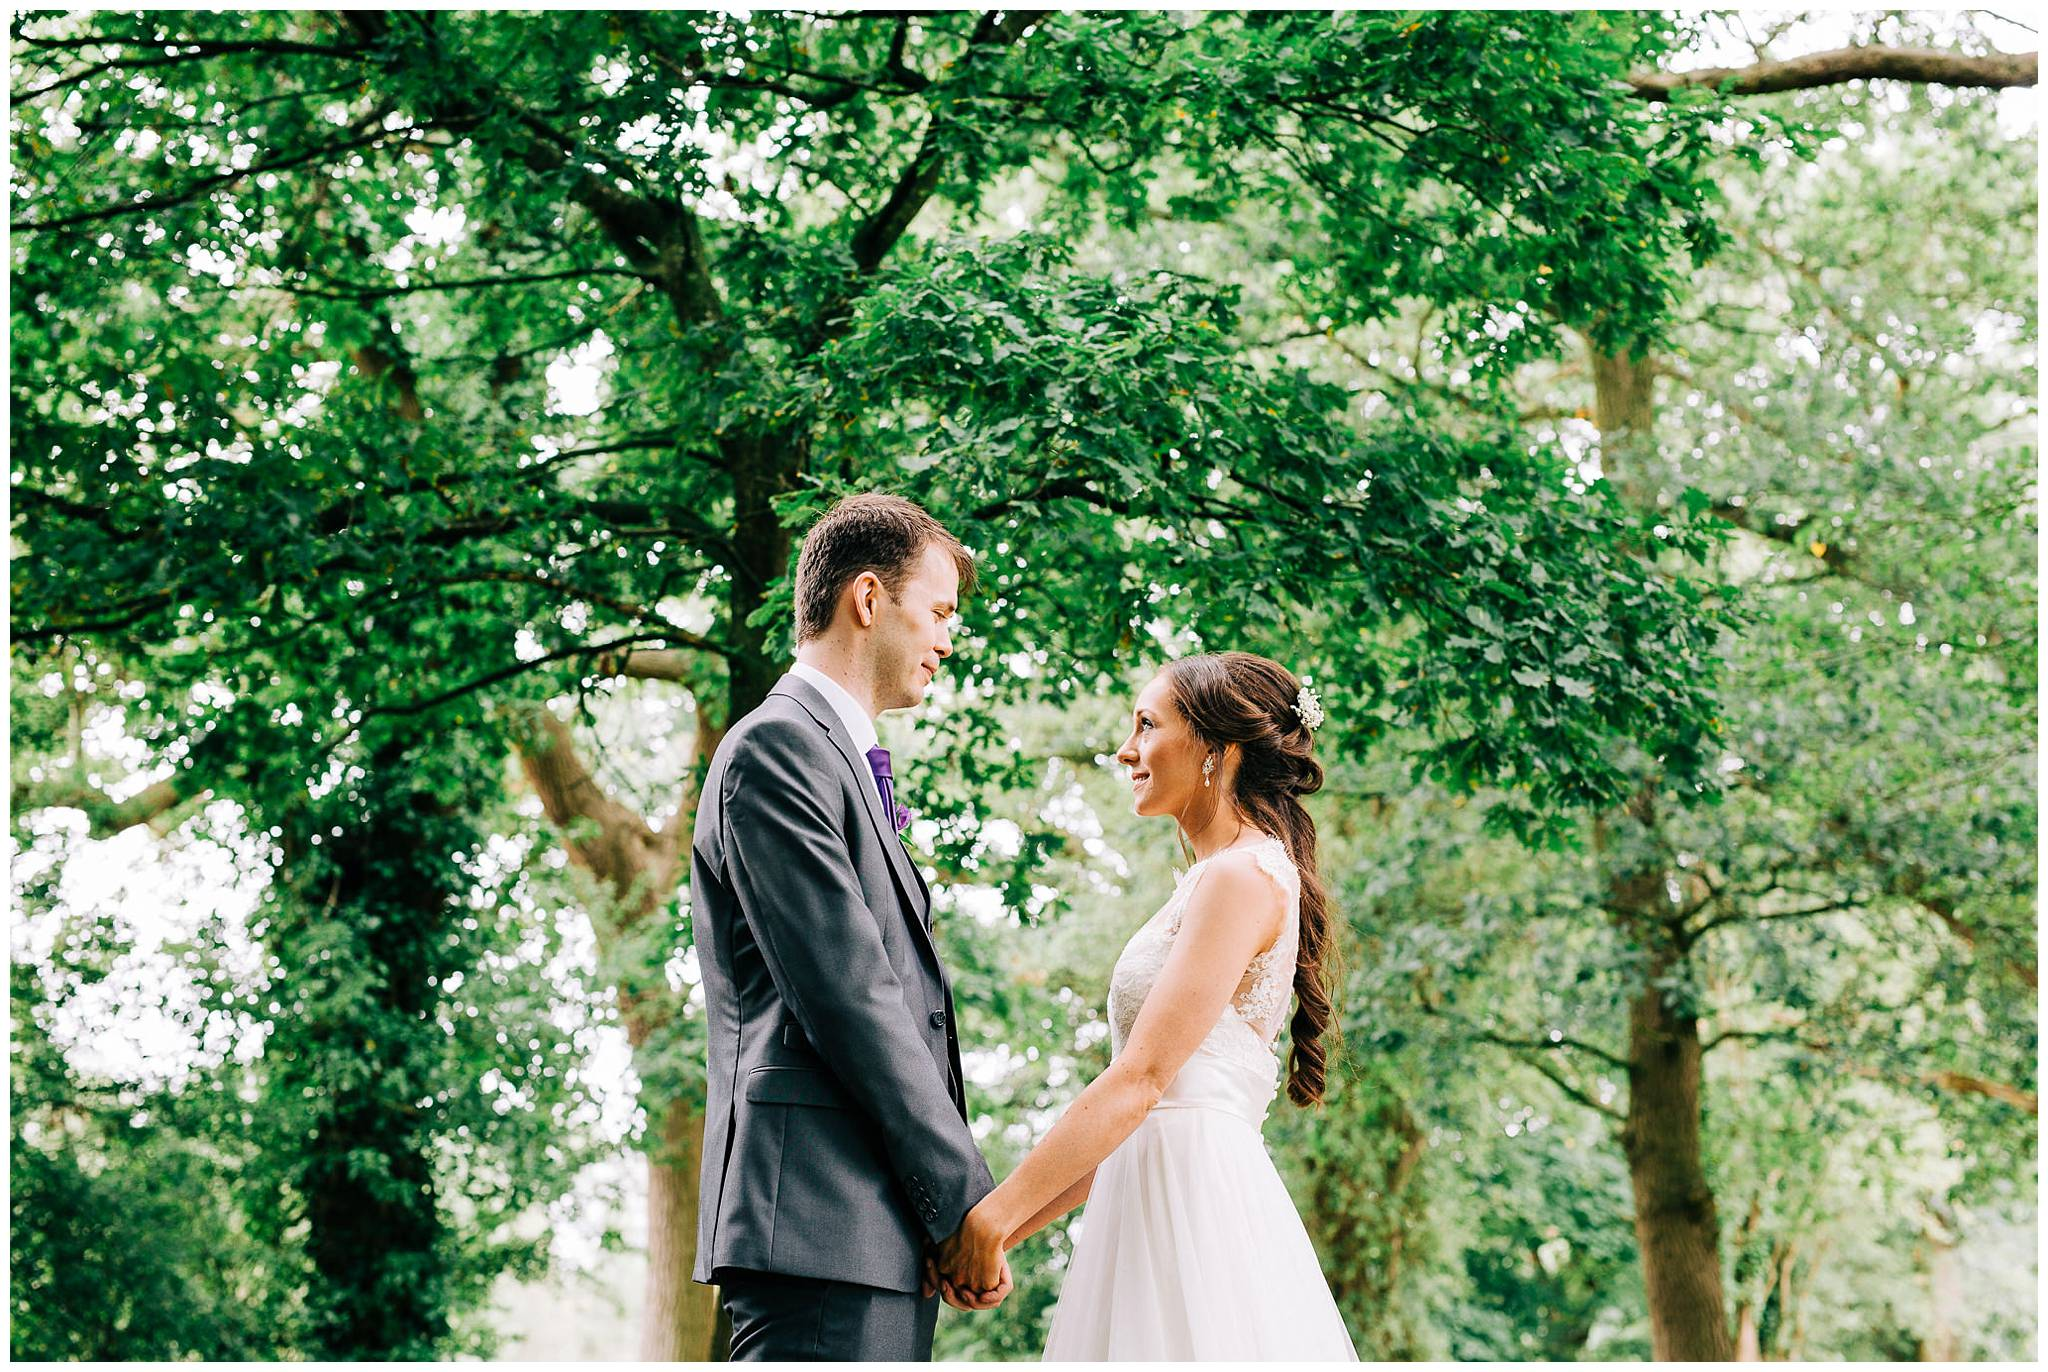 The Oak Tree at Peover - Cheshire Wedding Photographer-65.jpg